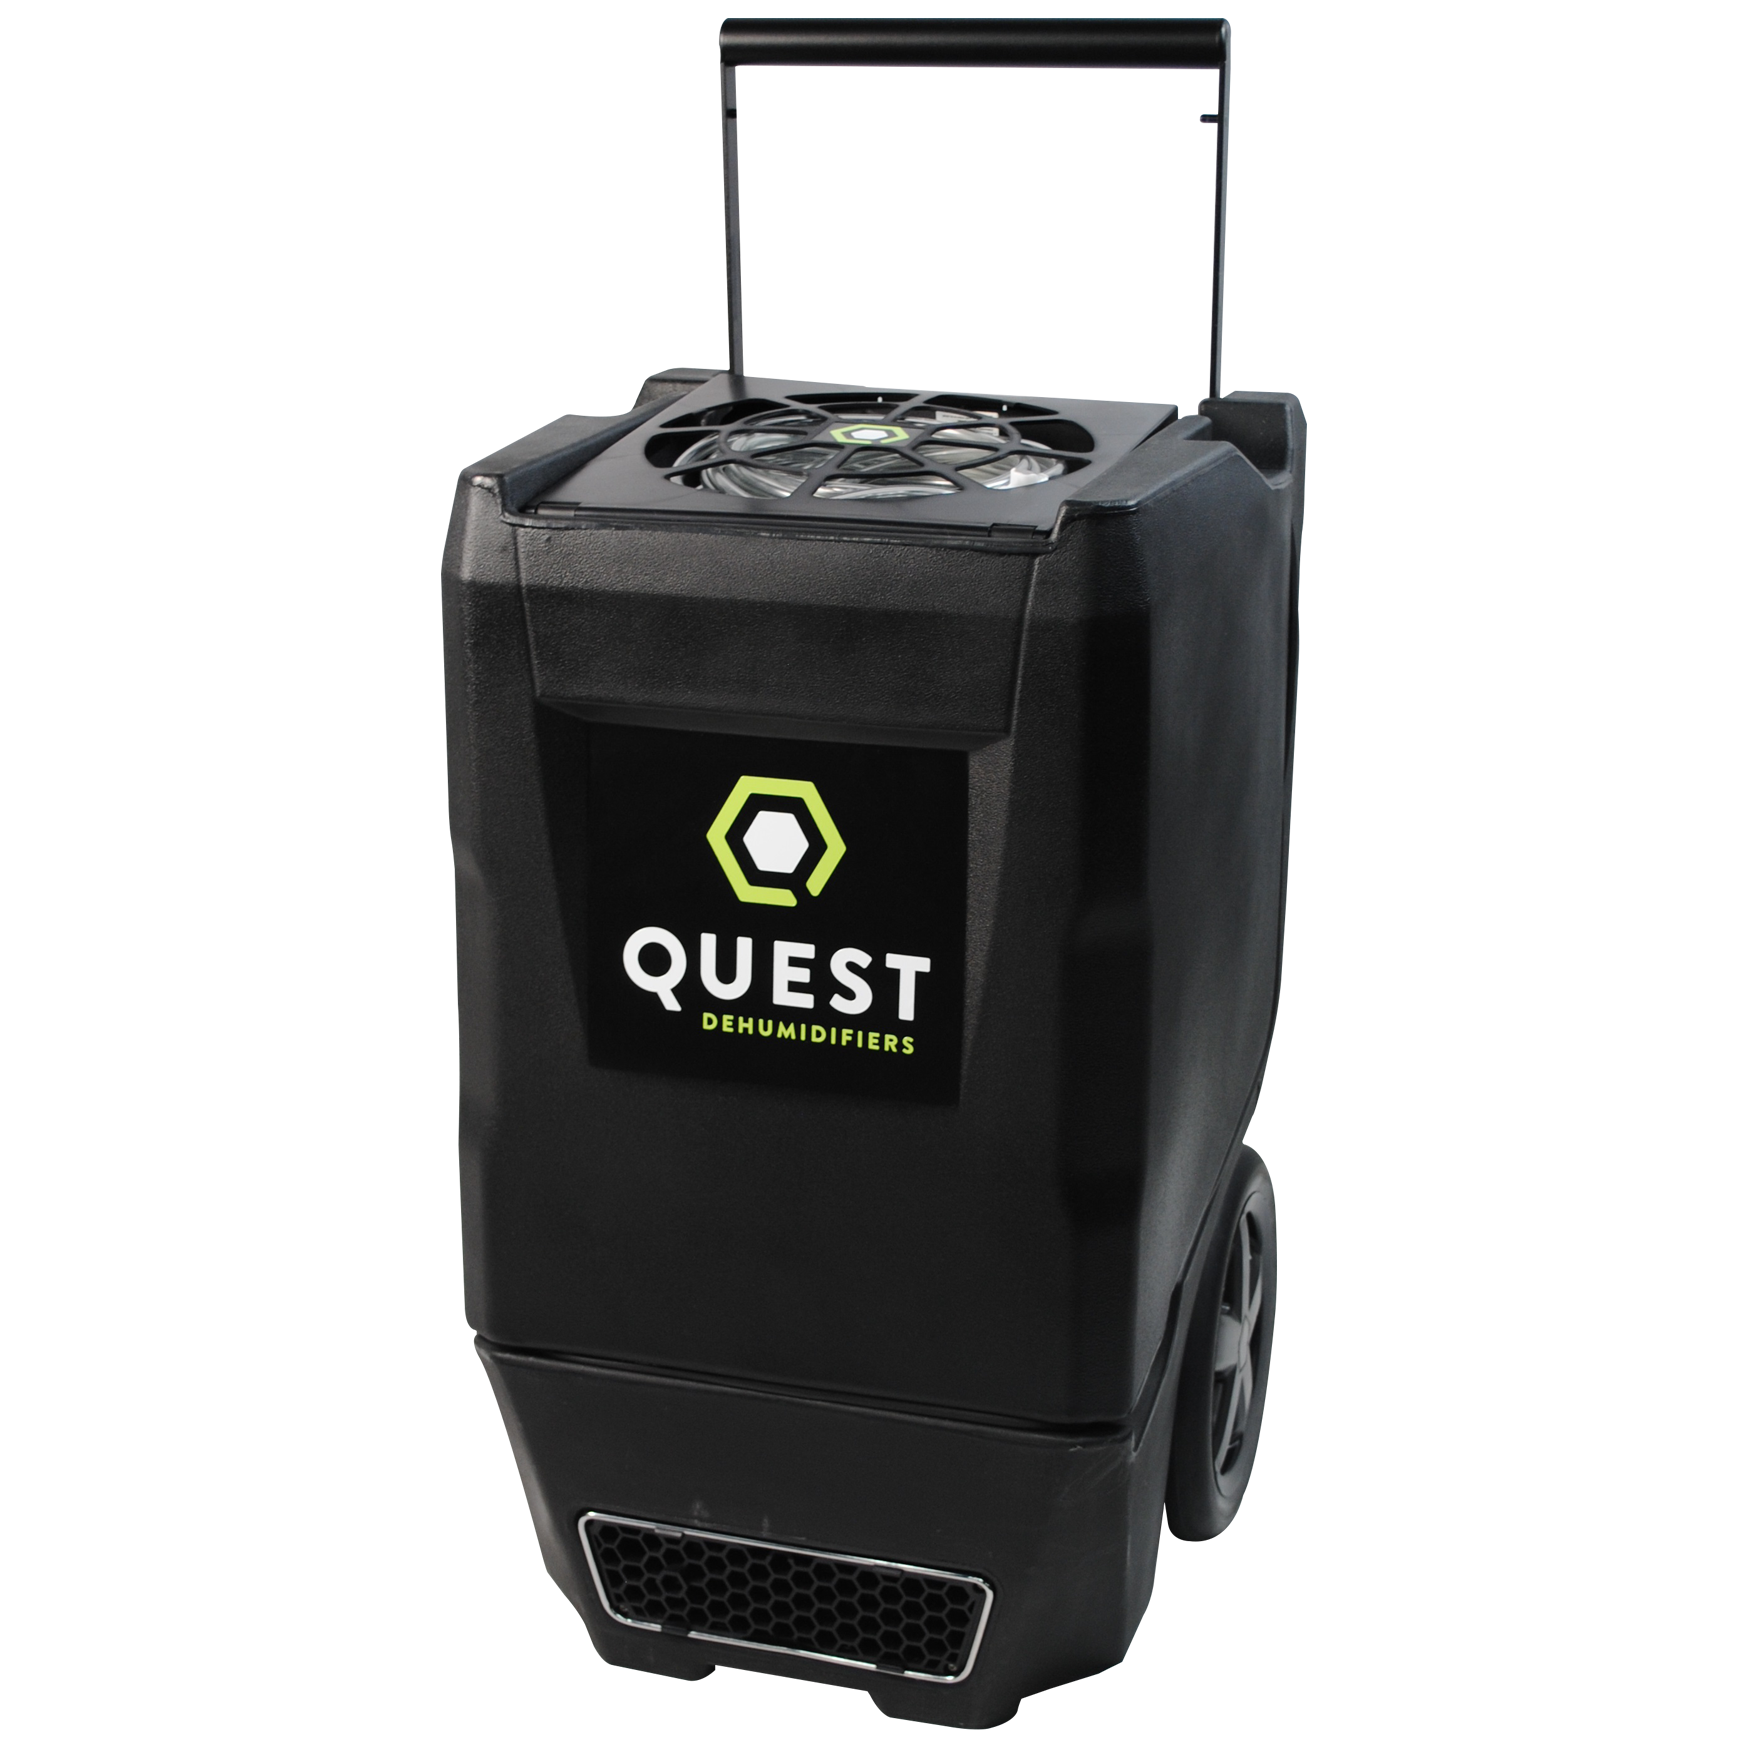 The Quest 114 Dehumidifier under review by Hydromag